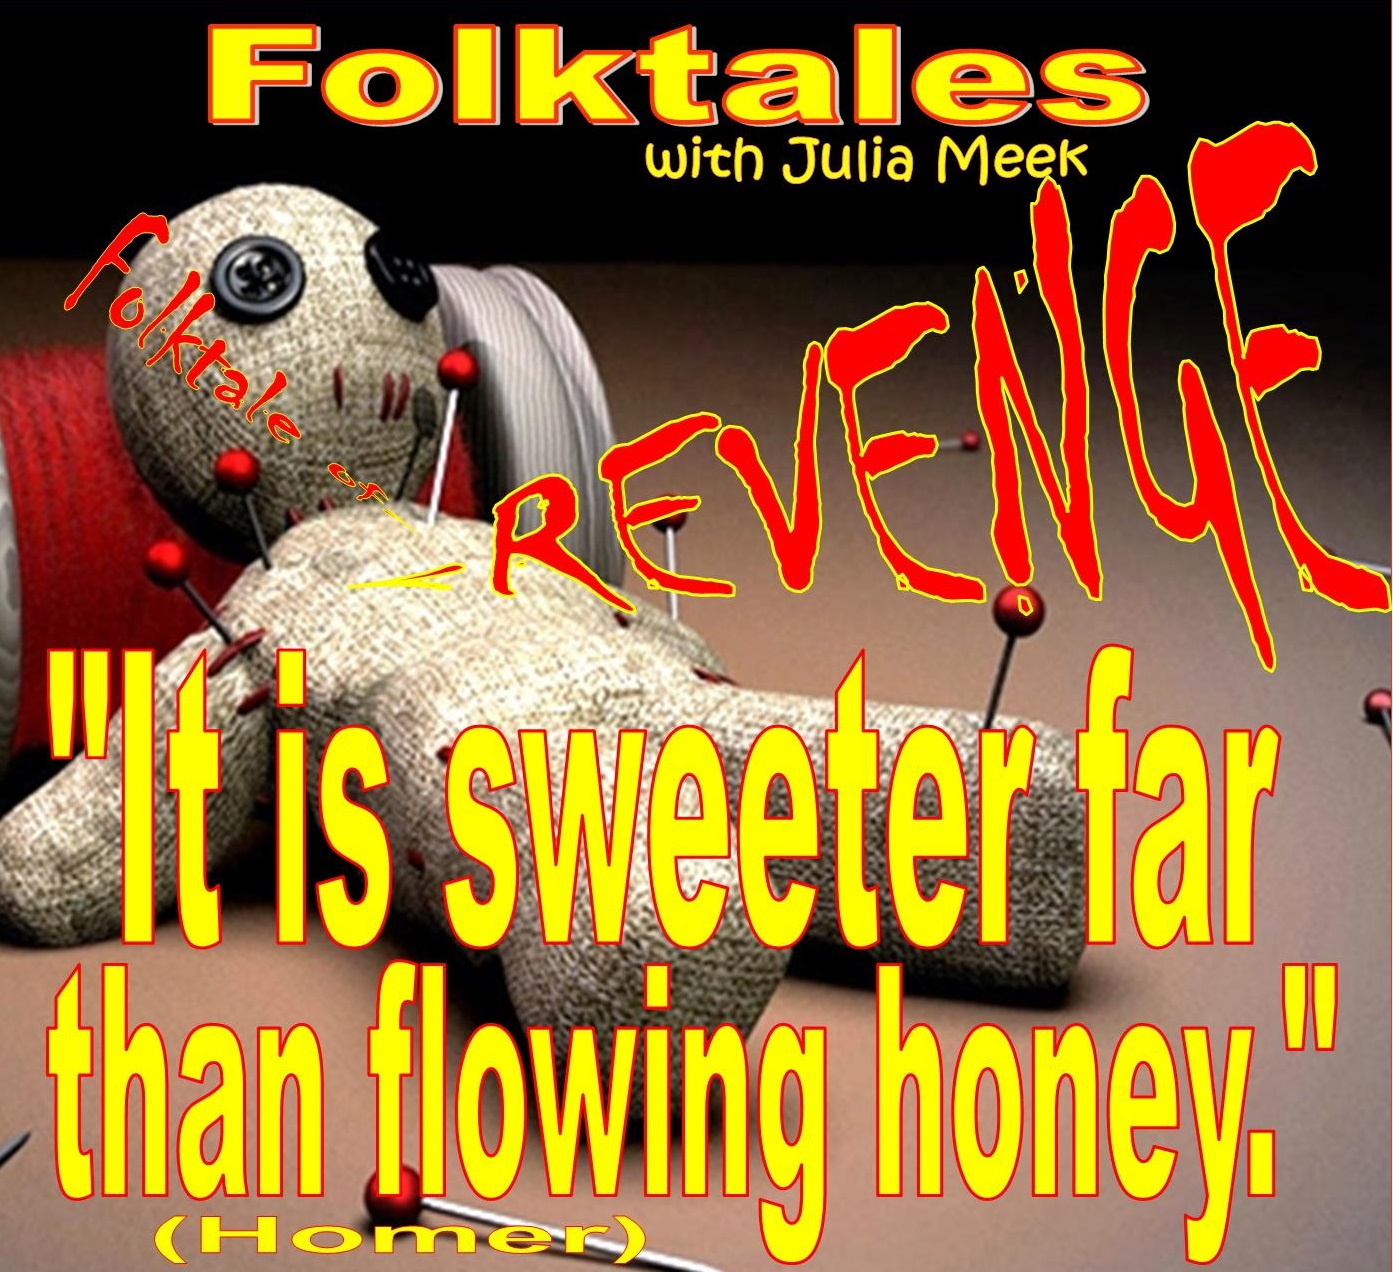 Caption: WBOI's Folkale of Revenge, Credit: Julia Meek